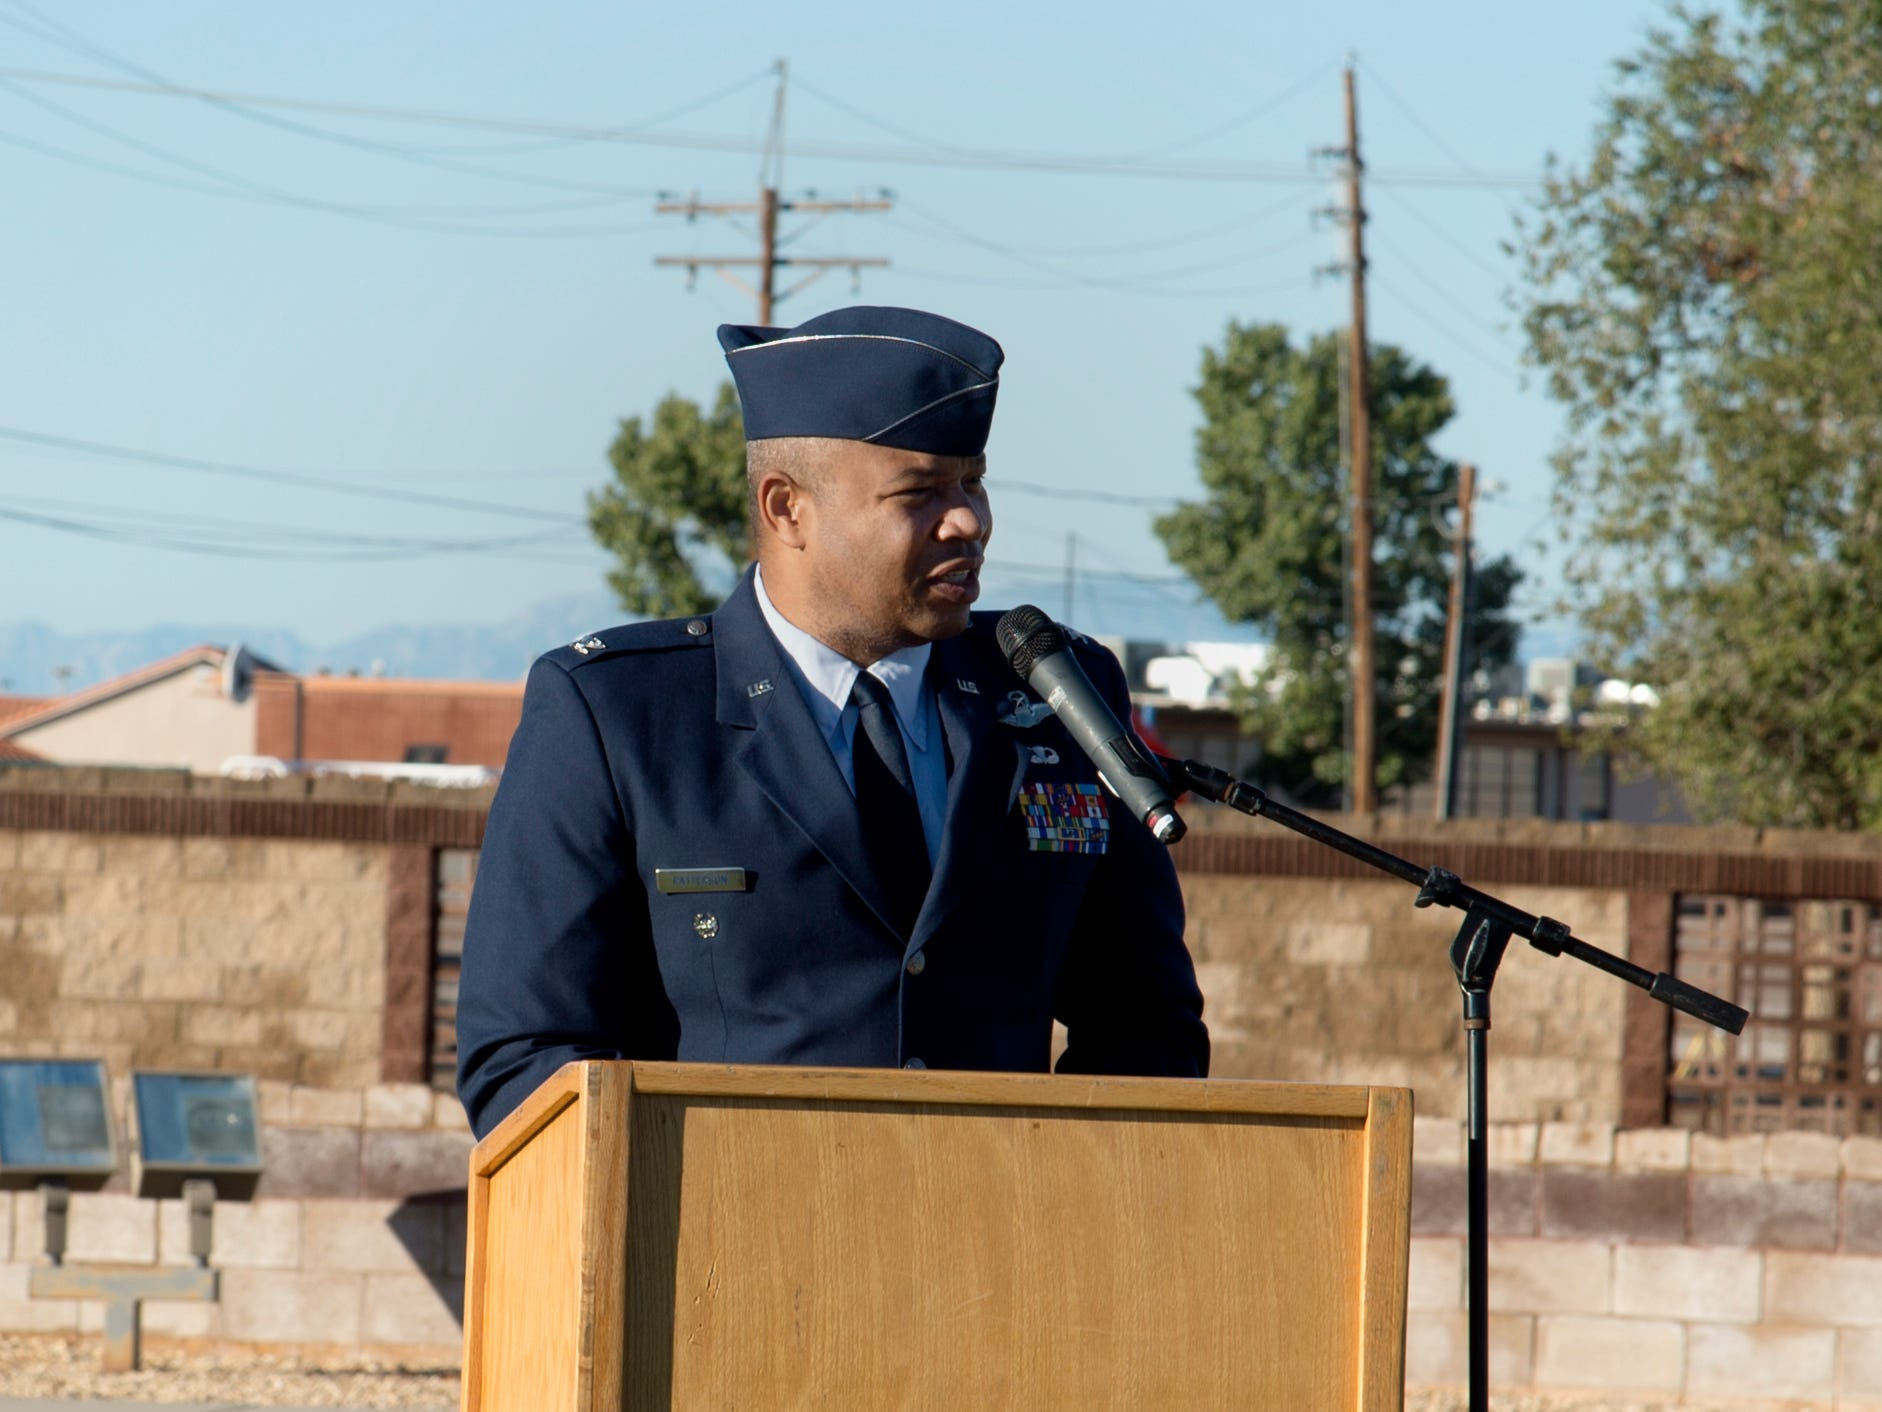 Col. Brian Patterson, 49th Wing vice commander, speaks at the POW/MIA ceremony at Heritage Park on Holloman Air Force Base, N.M., Sept. 21. The ceremony, in rememberance of prisoners-of-war and those still missing-in-action, was part of Holloman's POW/MIA commemoration.